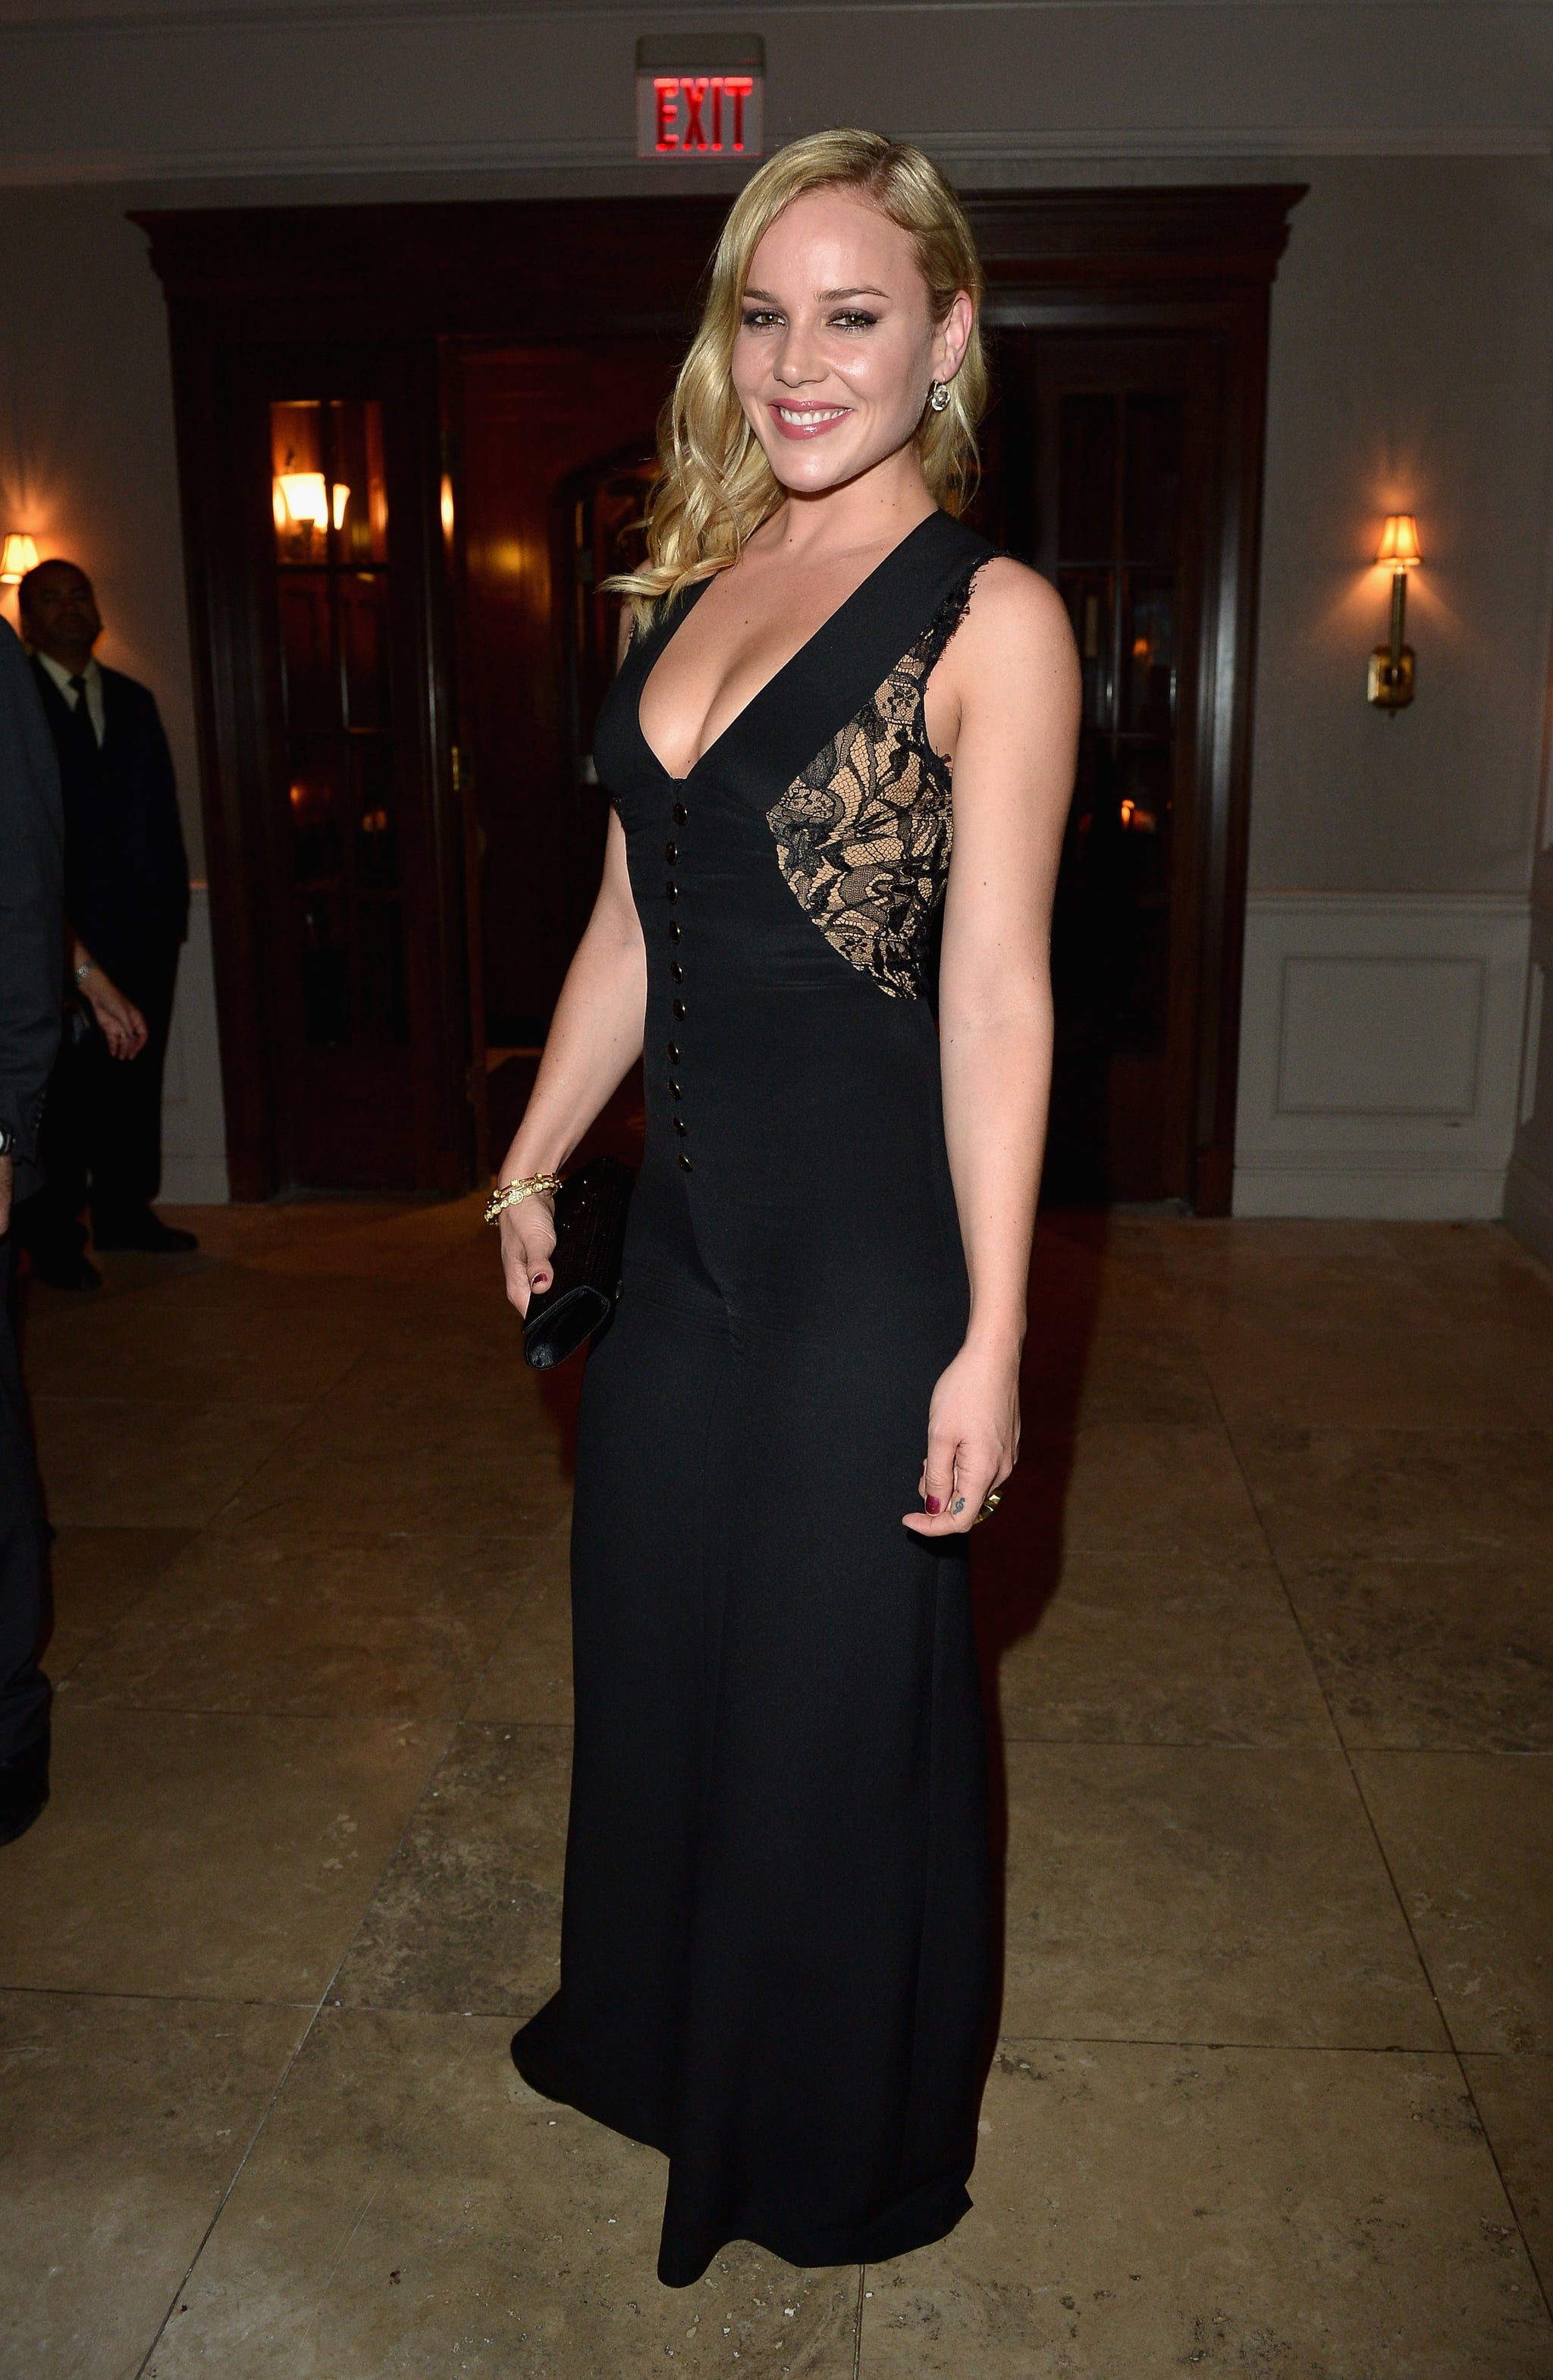 Abbie Cornish Rocked A Black Emilio Pucci Jumpsuit The Sexy Lace